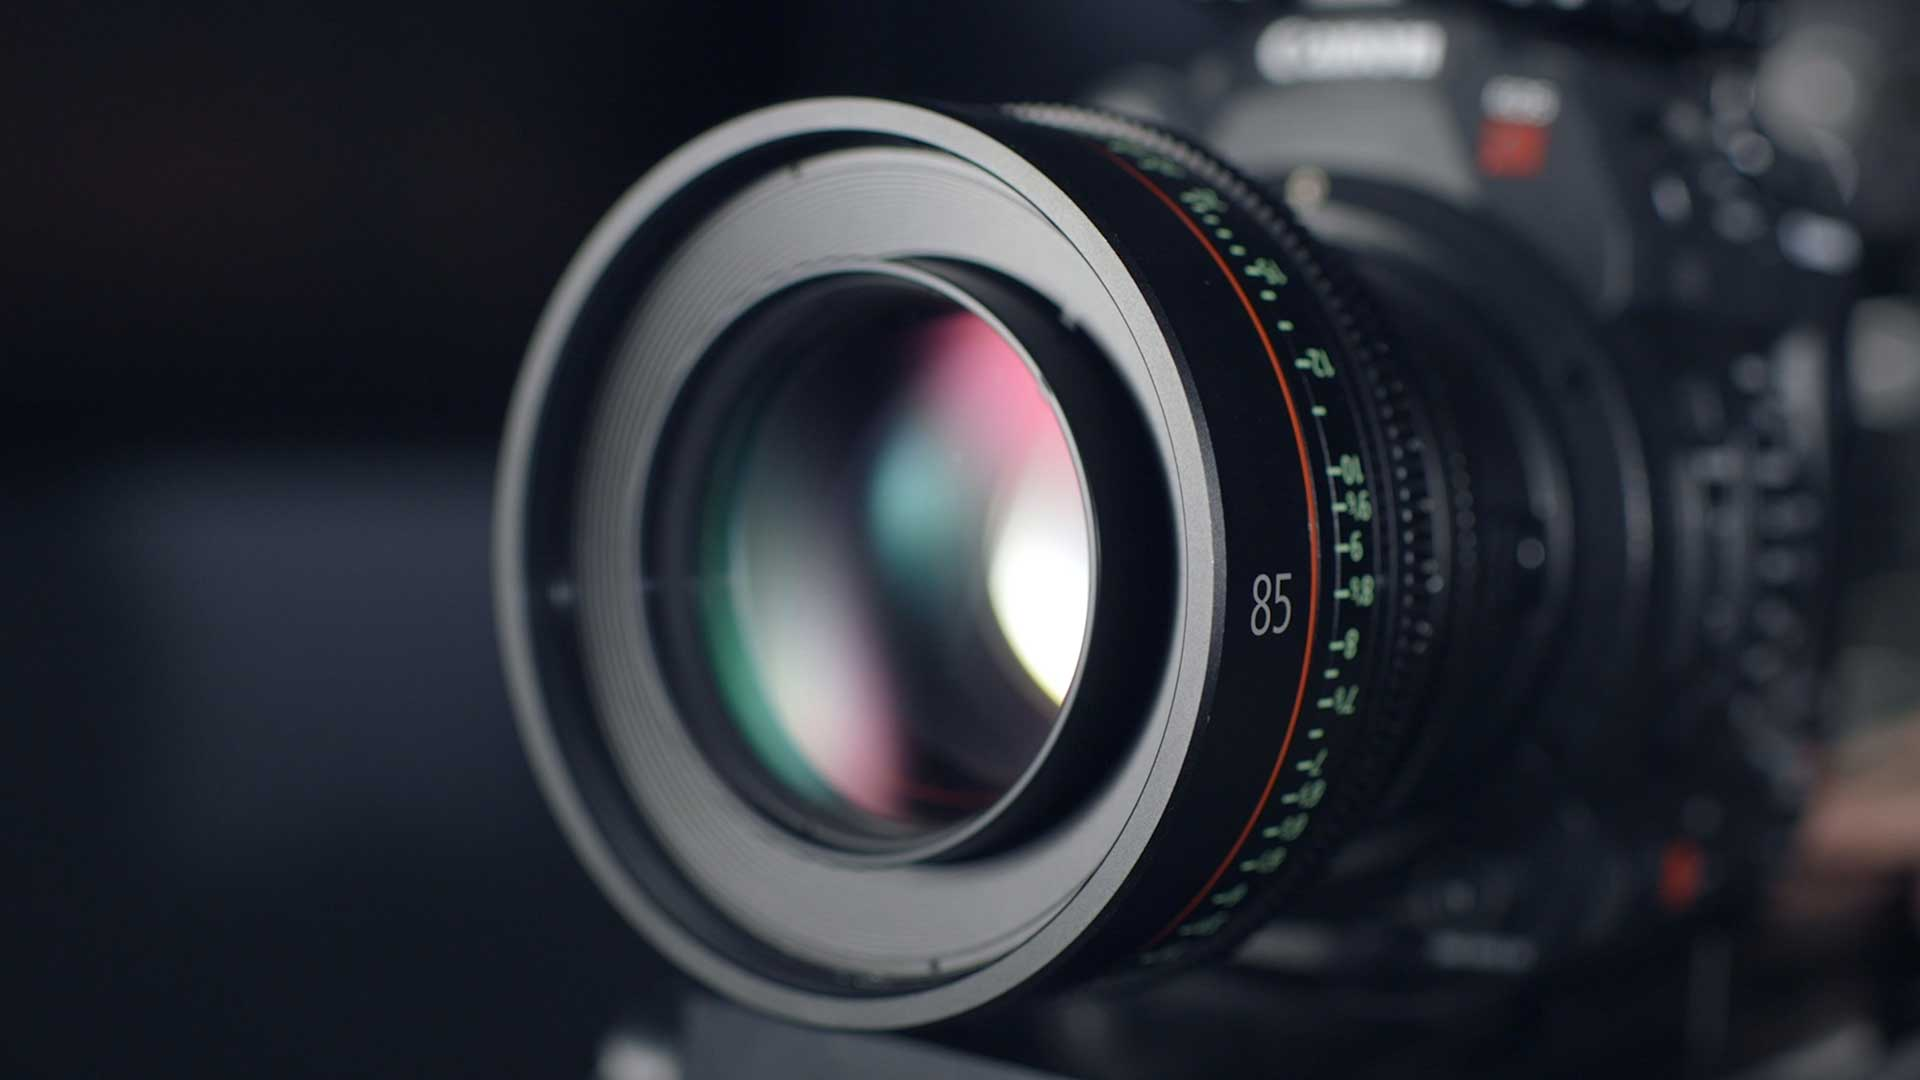 close up of a dslr camera lens on a black canon camera